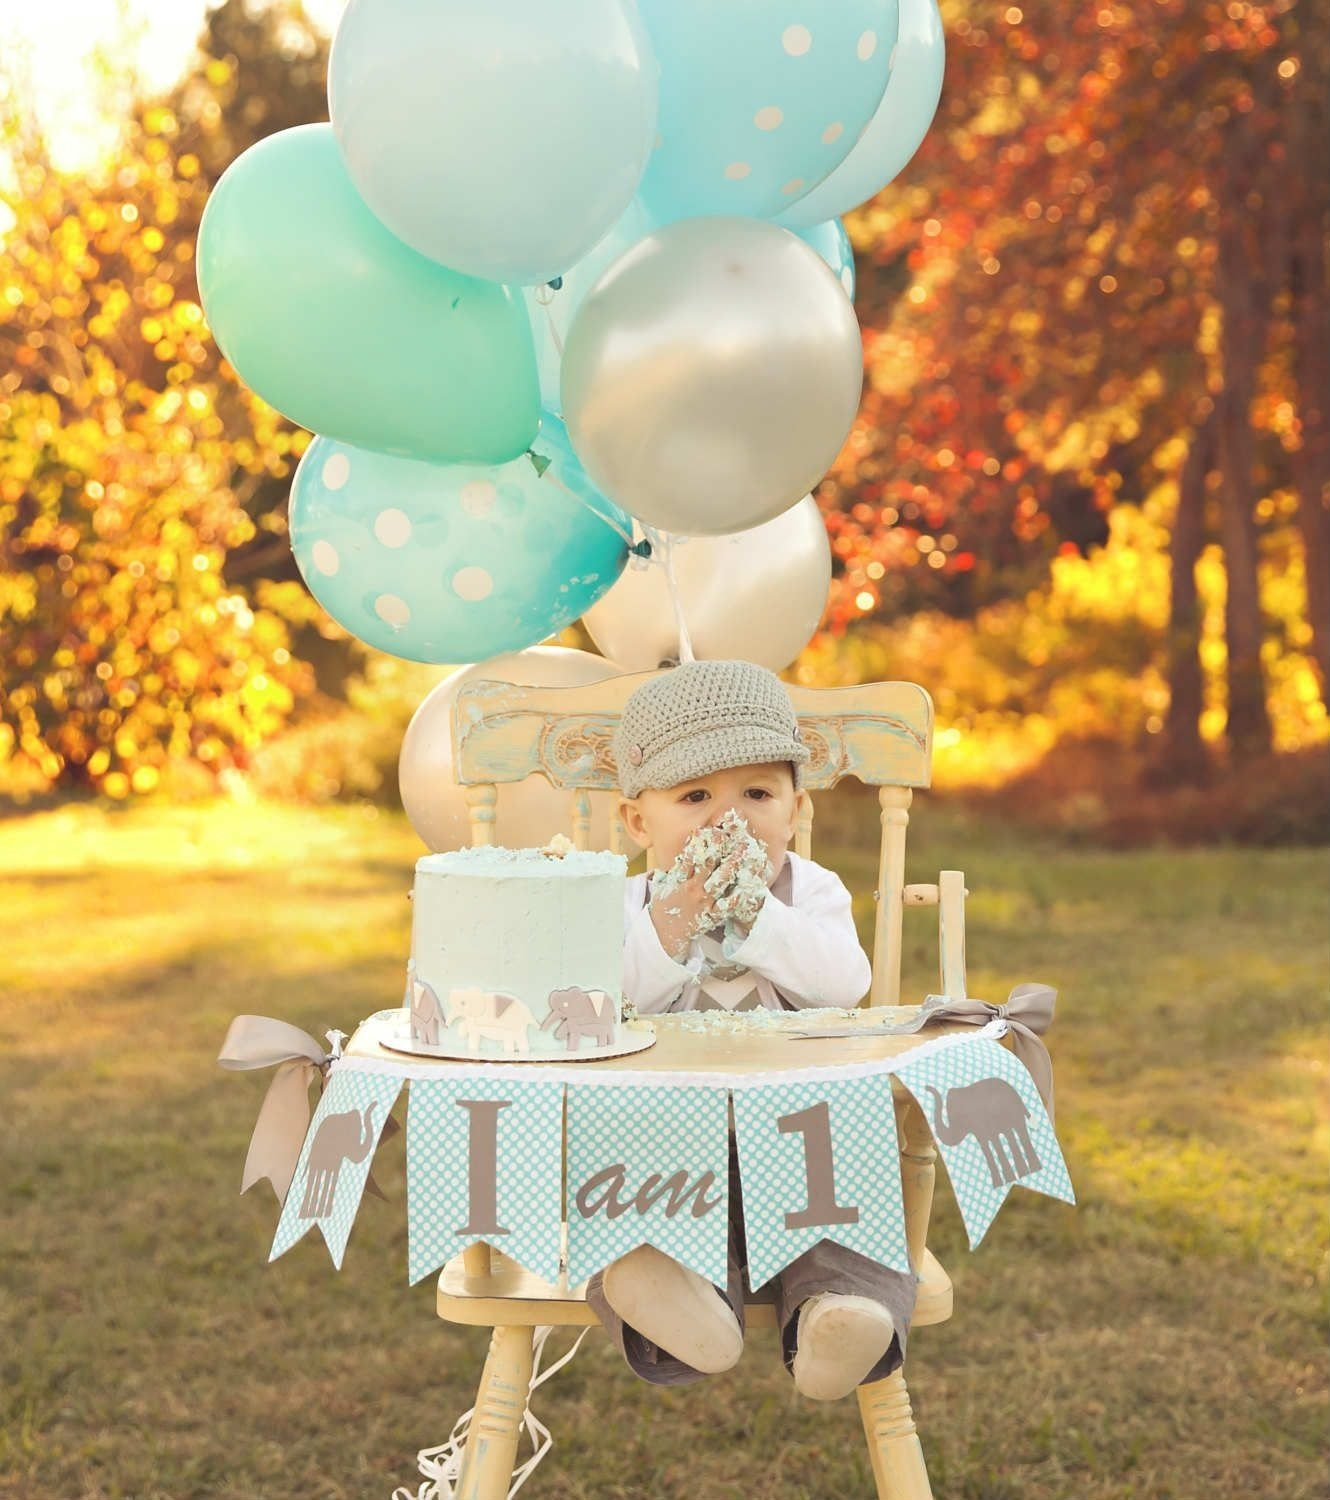 10 Nice Ideas For Baby First Birthday 10 1st birthday party ideas for boys part 2 birthday decorations 7 2020